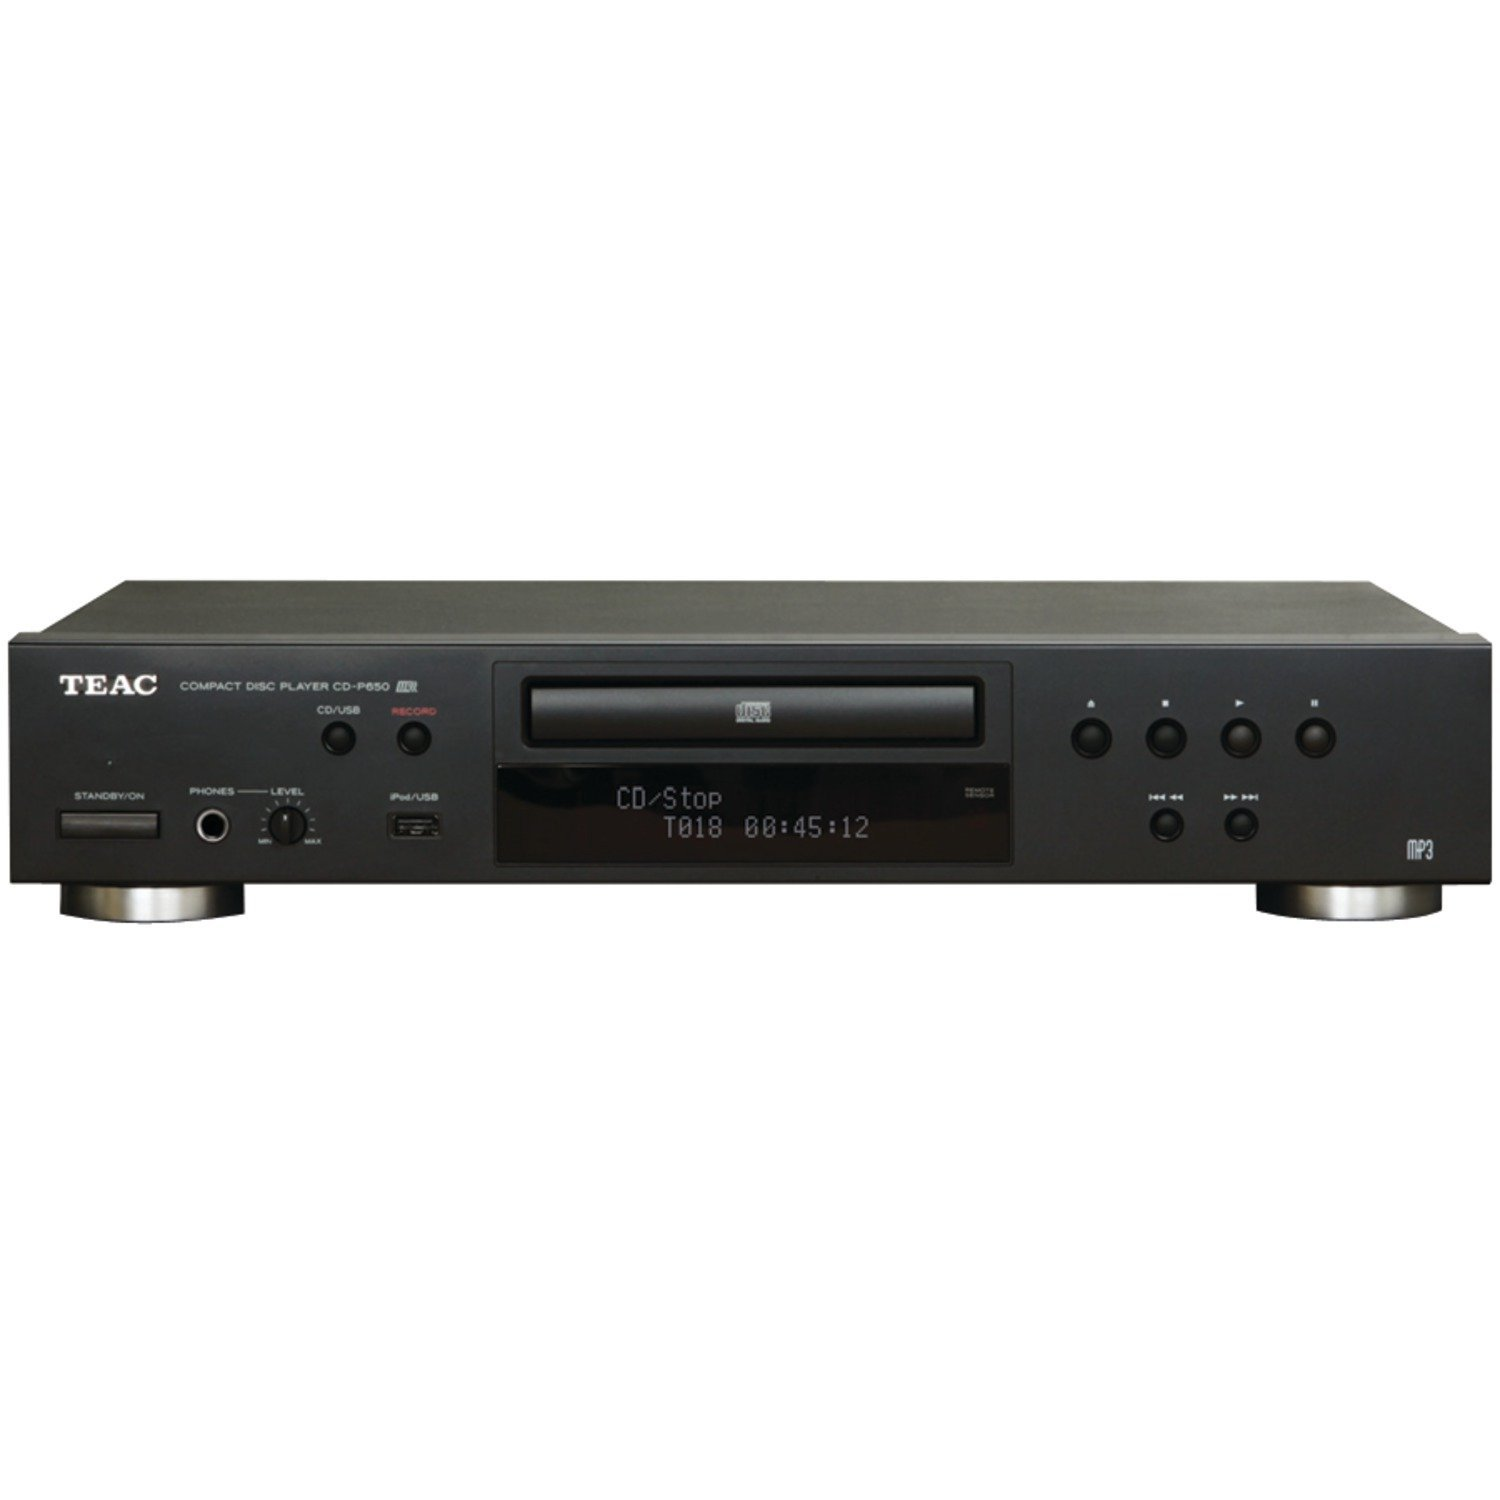 TEAC CD-P650-B Compact Disc Player with USB and iPod Digital Interface (Black) (Renewed)